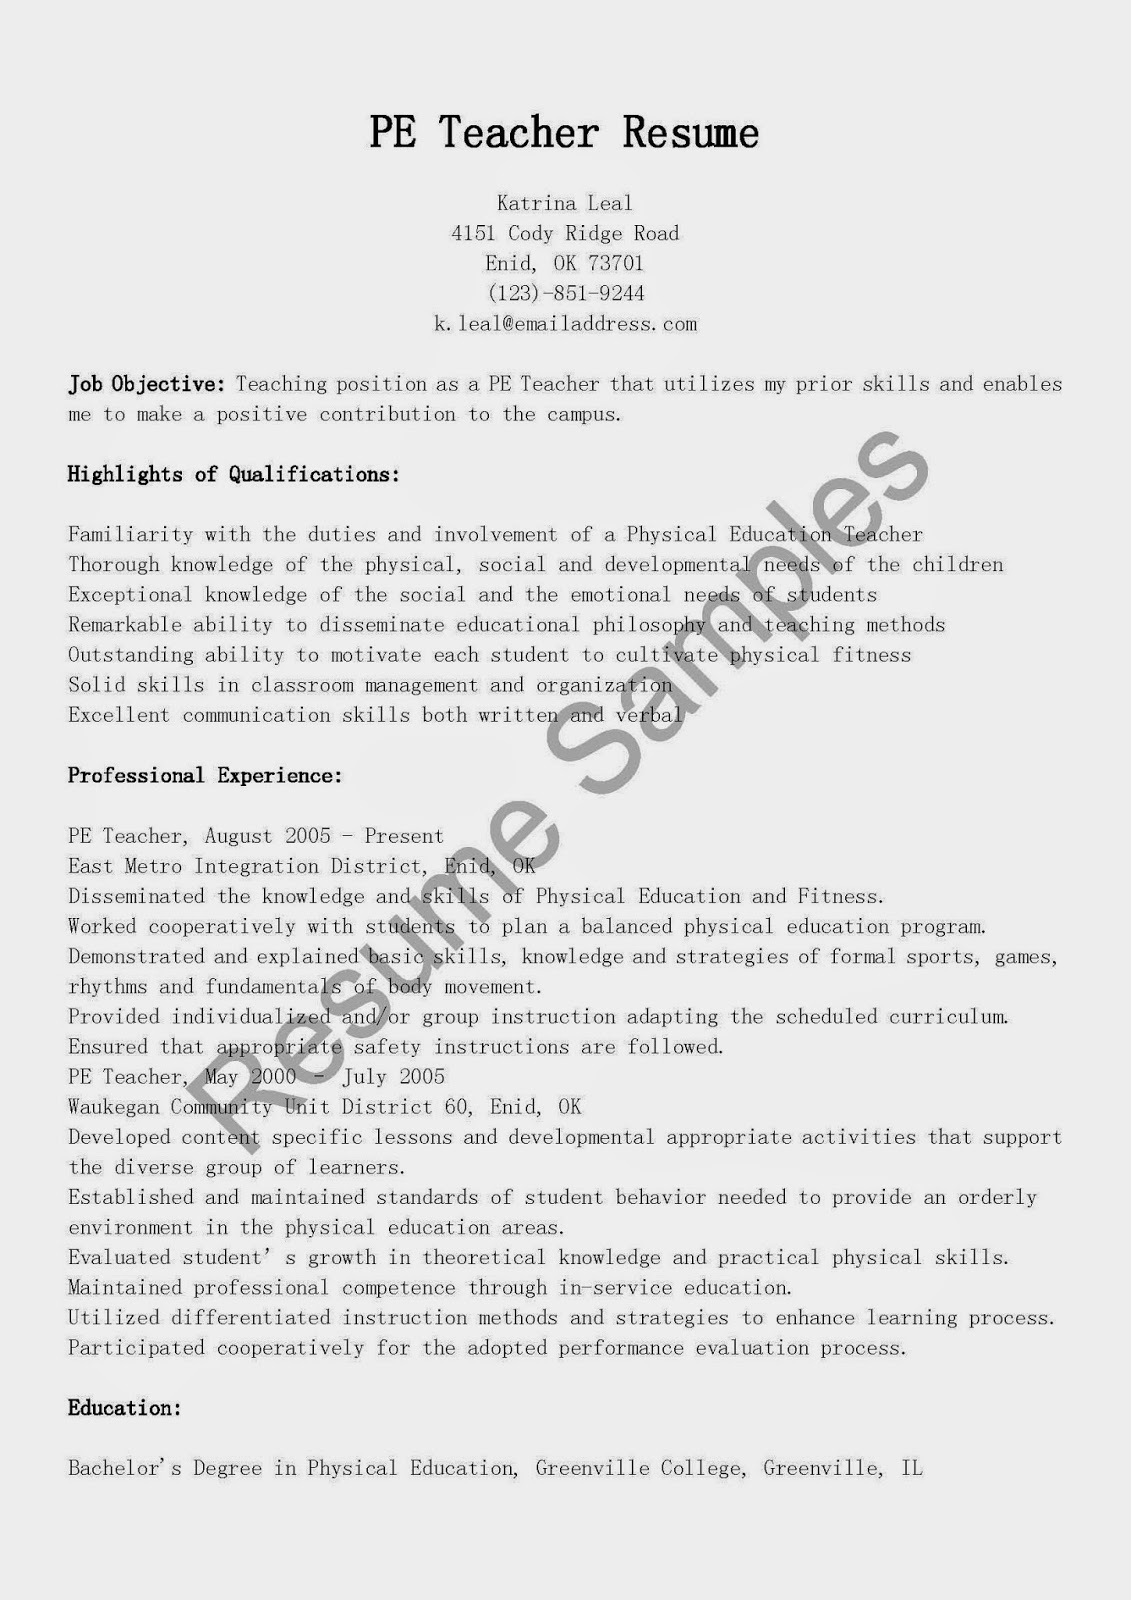 Resume Samples Pe Teacher Resume Sample